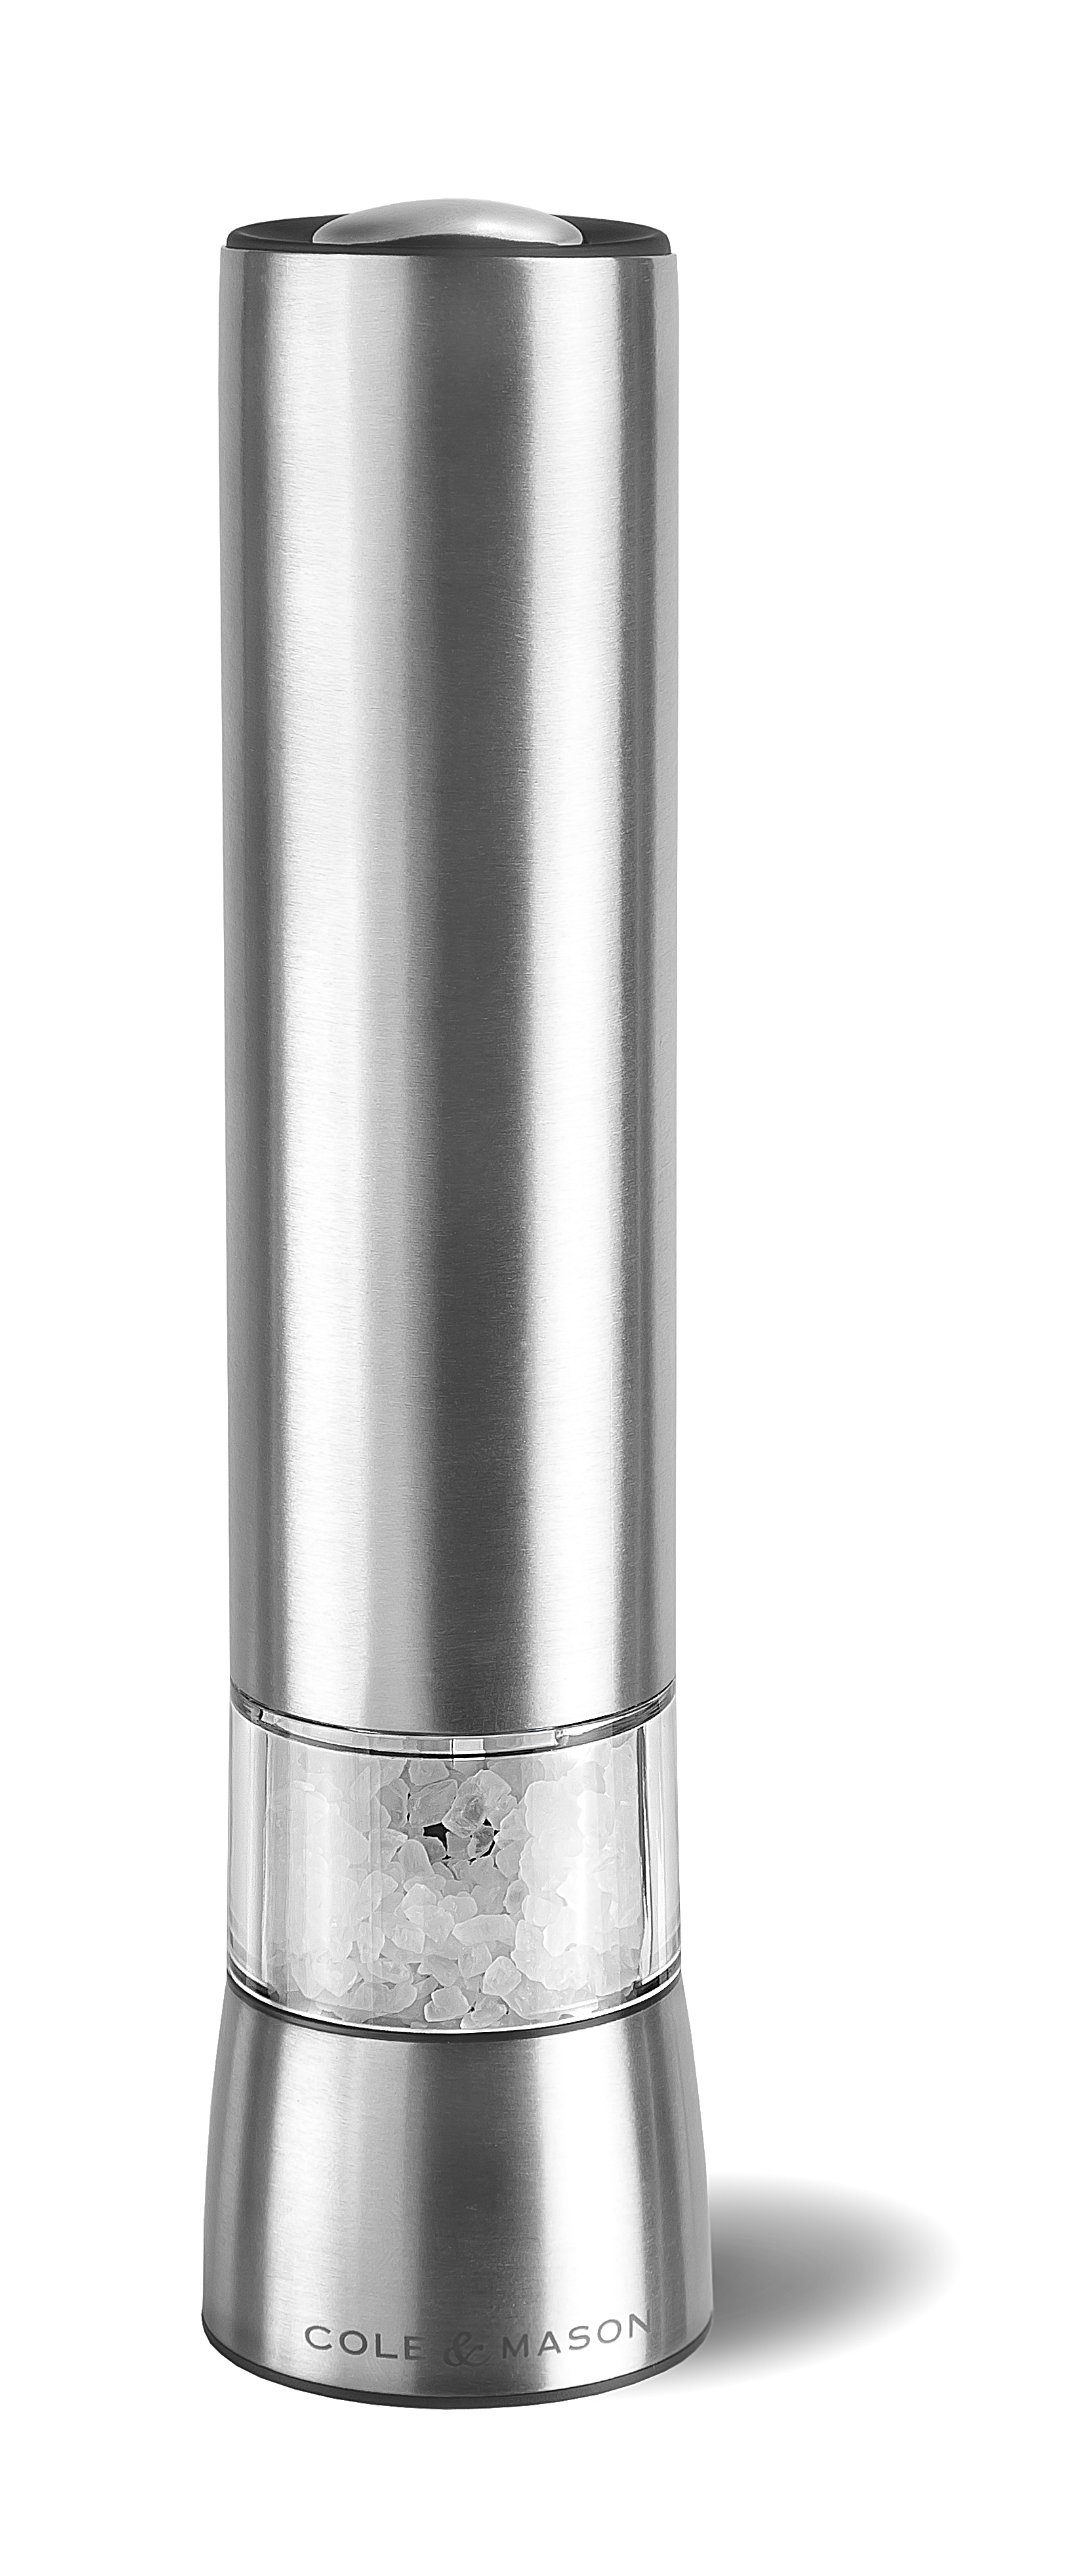 COLE & MASON Hampstead Electric Salt Grinder with LED Light - Electronic Battery Operated Mill, Stainless Steel by Cole & Mason